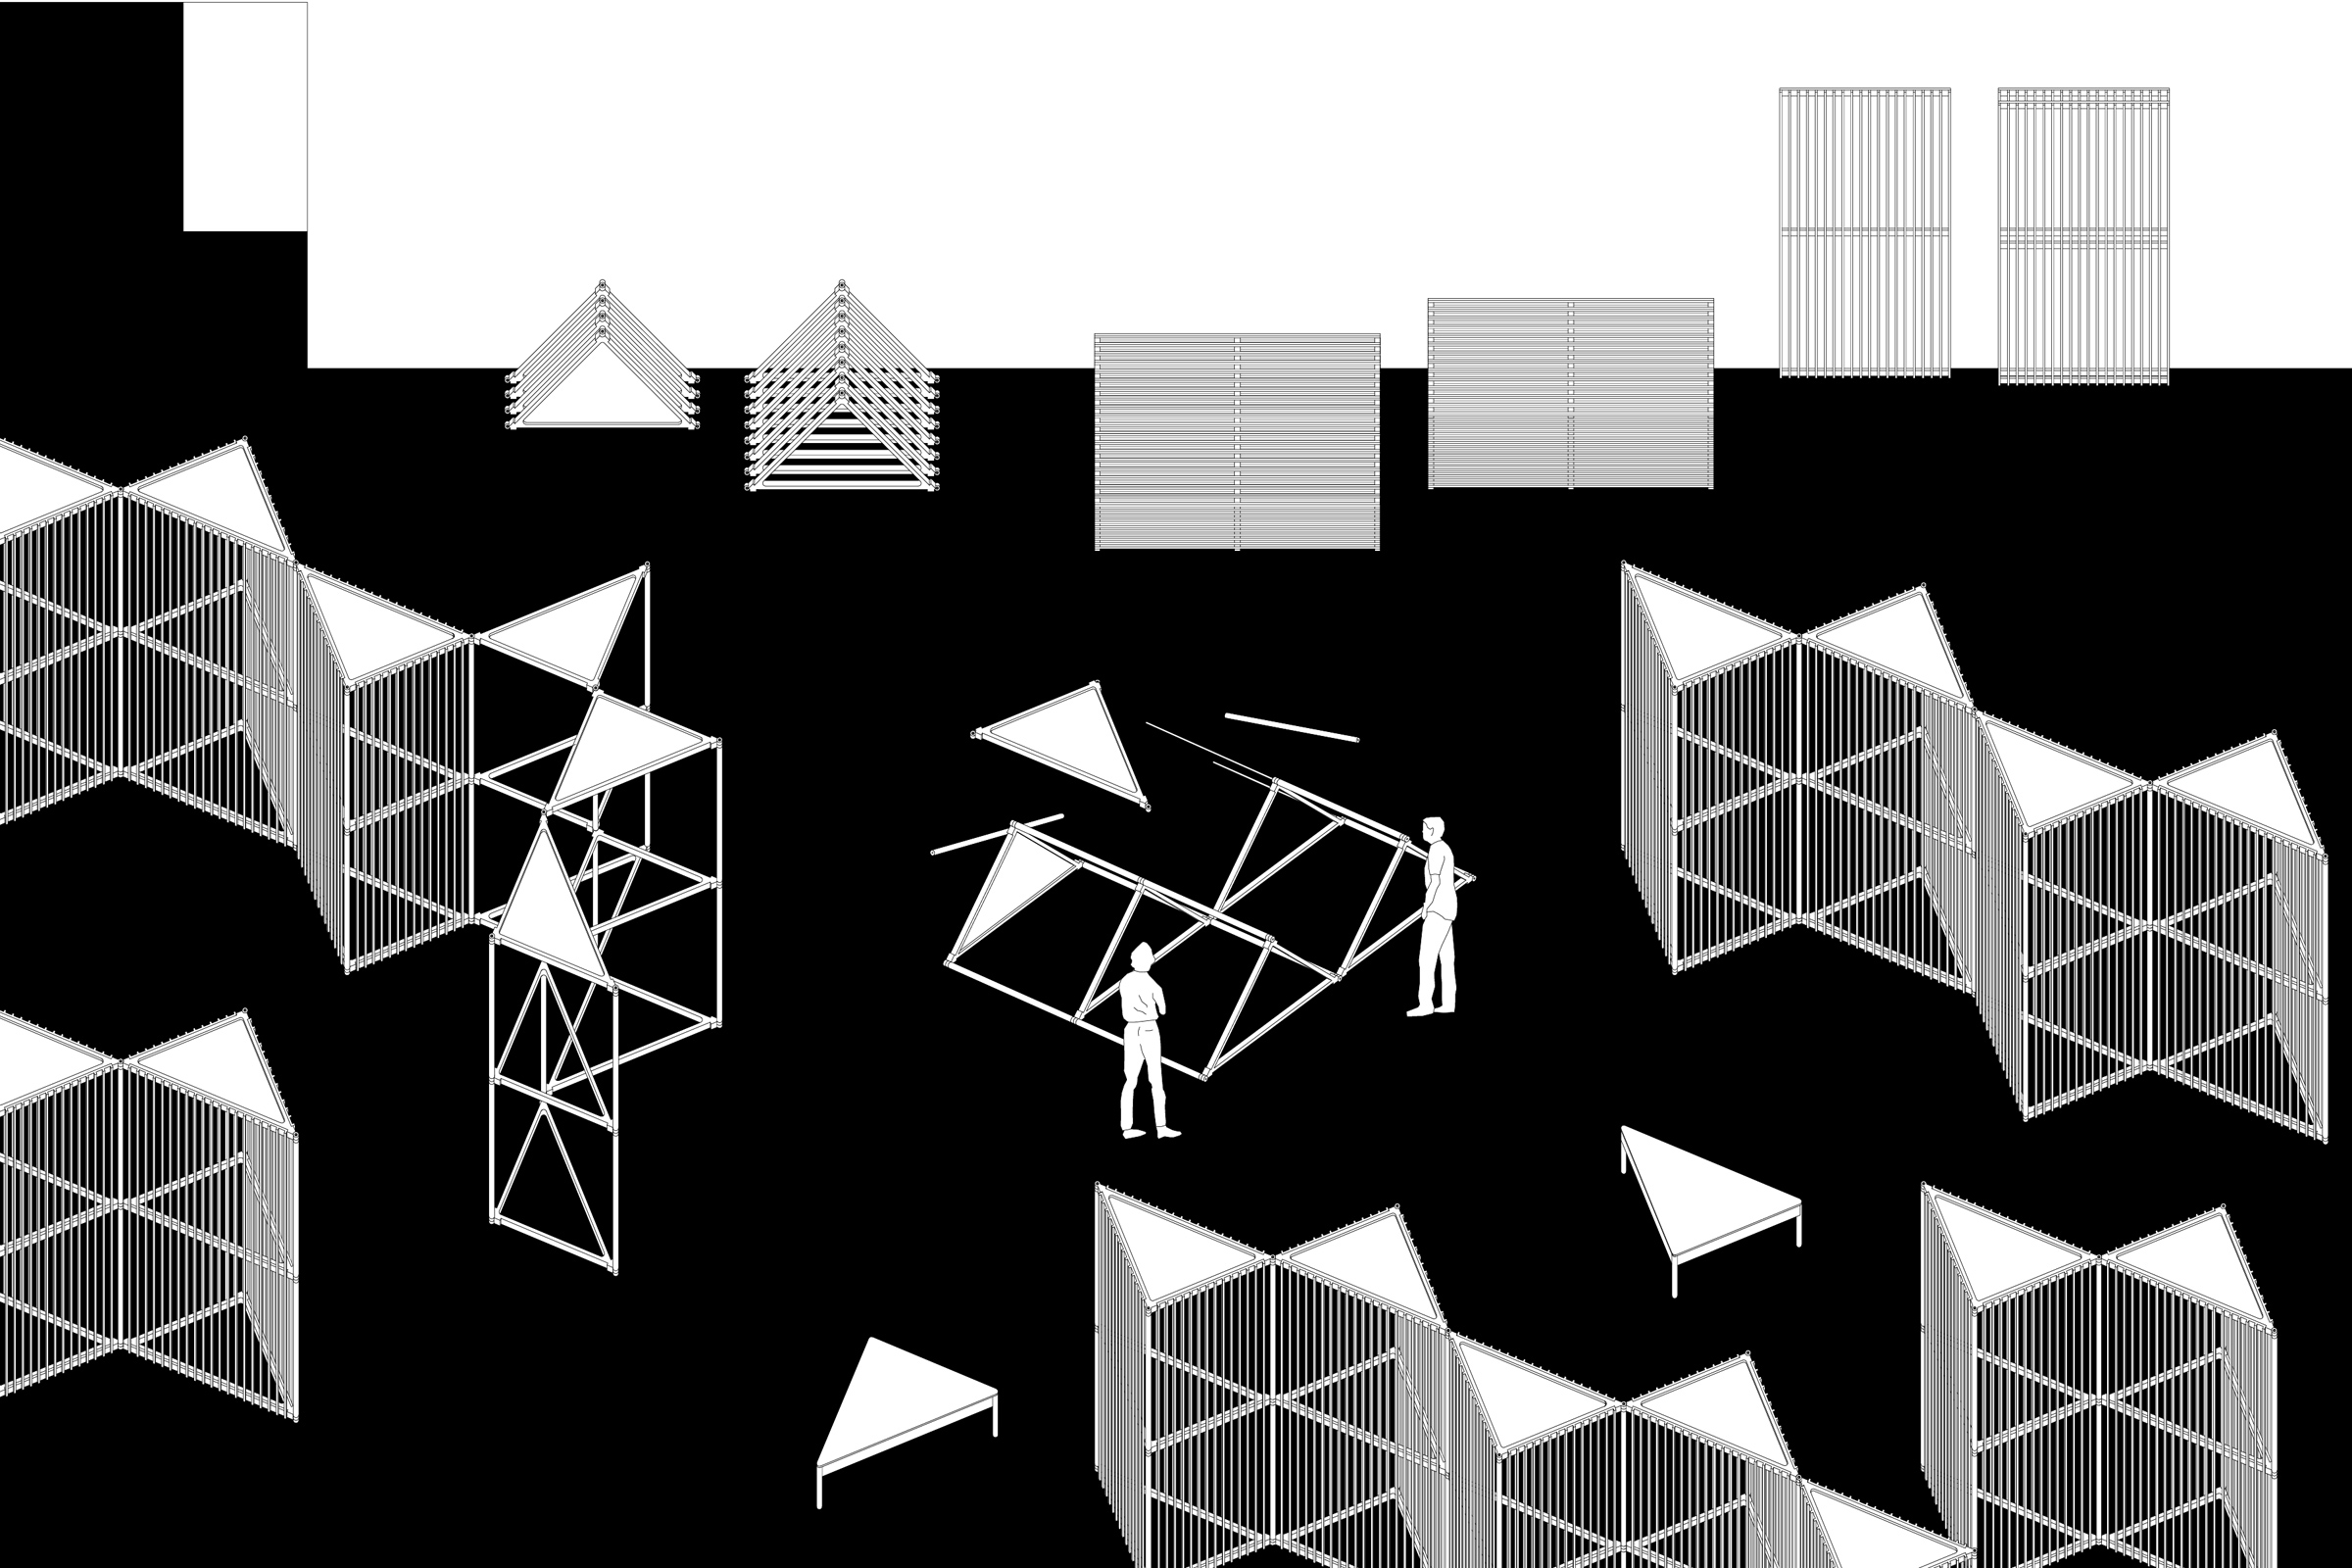 Josef Albers Exhibition. Axonometric view of the framework set-up